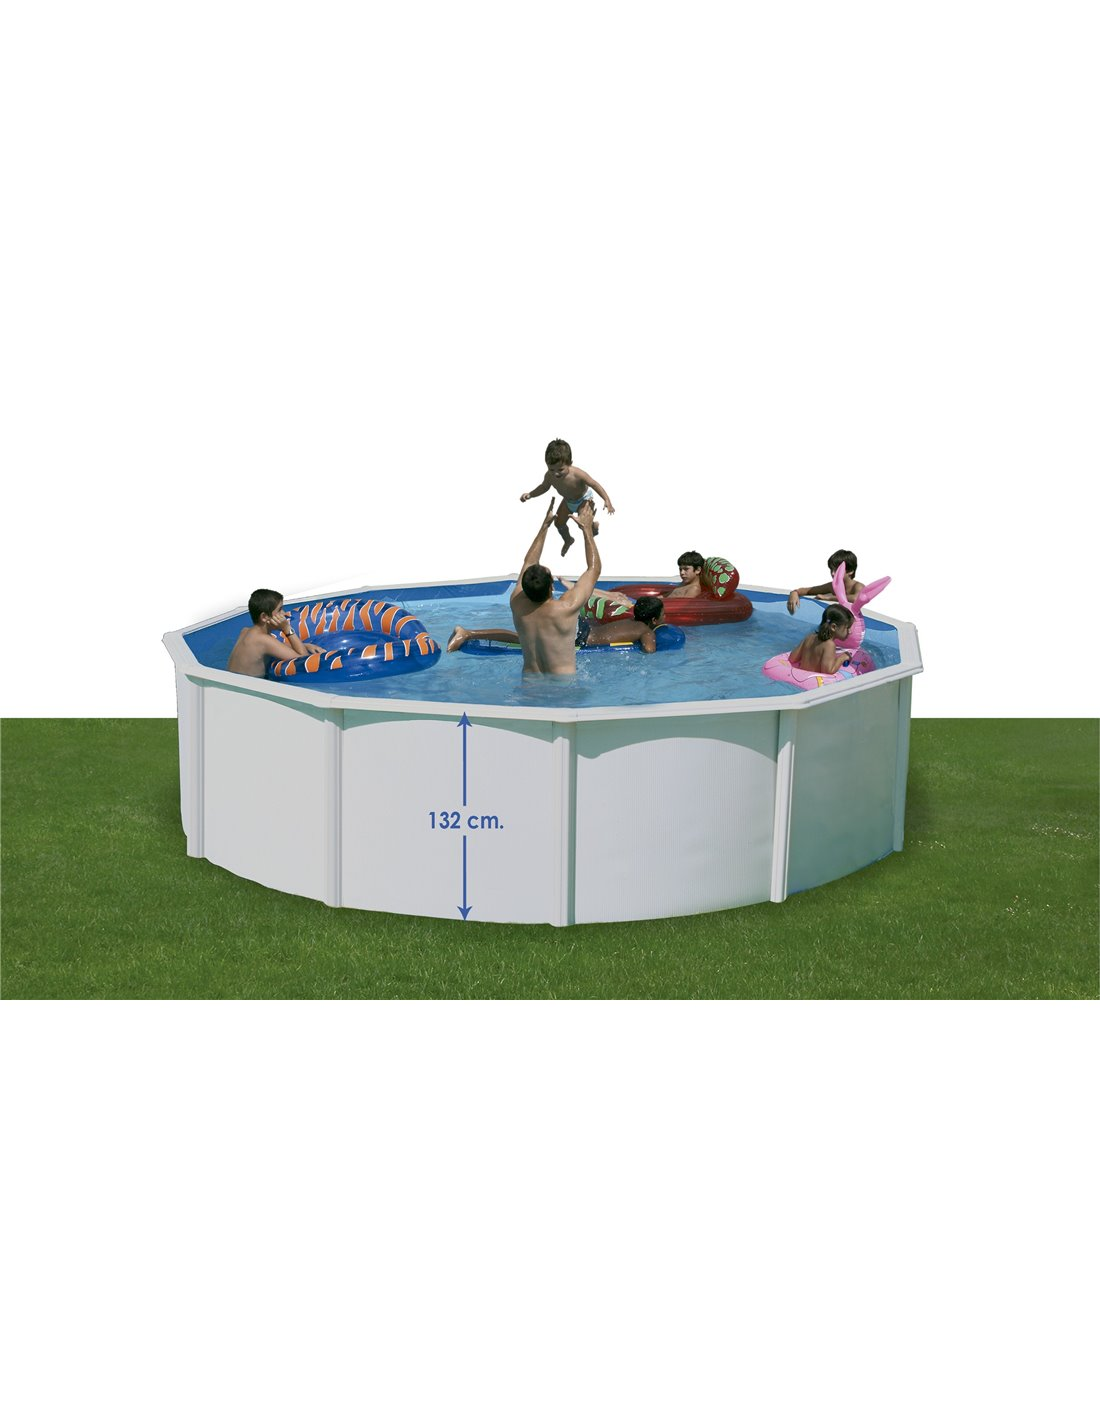 Piscina hinchable familiar con asientos megapiscinas - Piscina hinchable con asientos ...